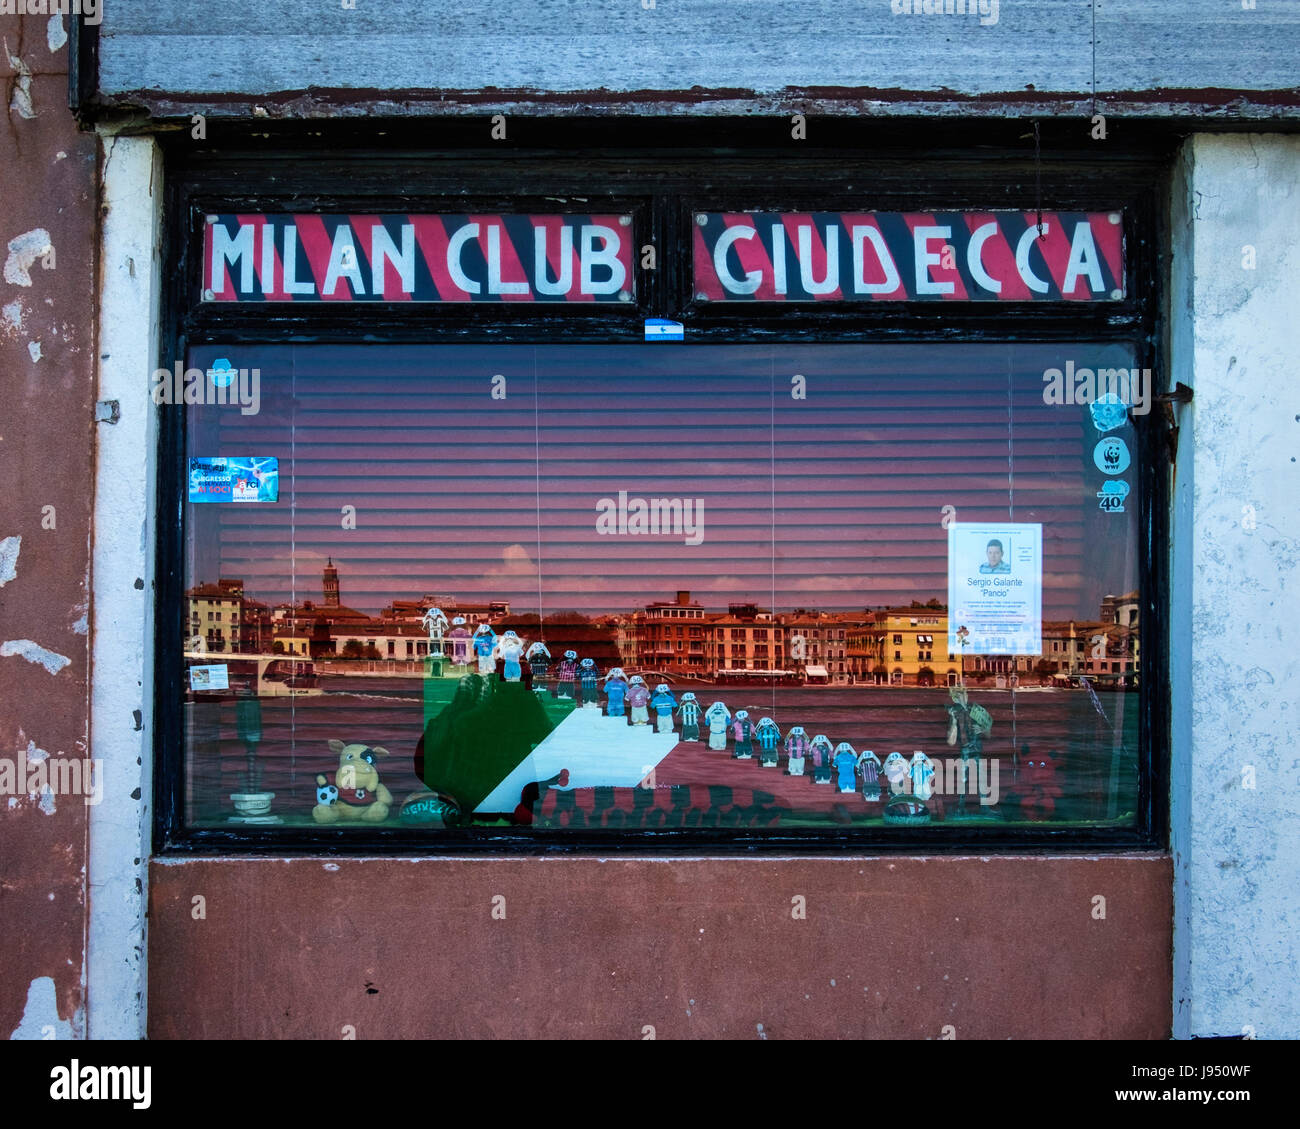 Venice,Giudecca.Milan Club, exterior window.Football supporters club wih mementoes and reflections of grand Venetian - Stock Image